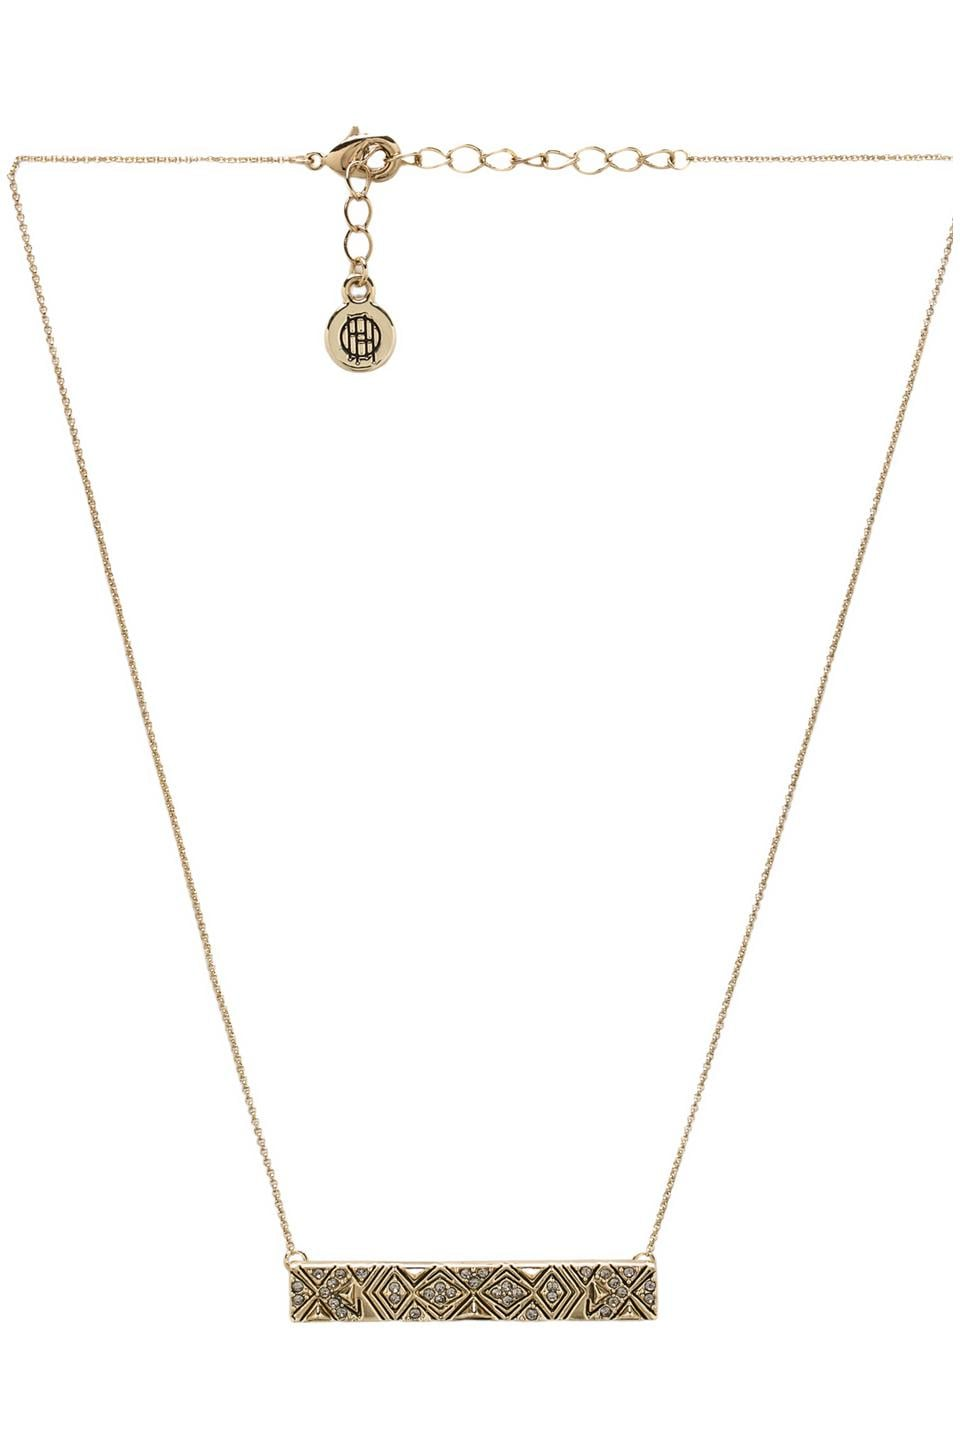 House of Harlow 1960 House of Harlow Engraved Kilim Bar Necklace in Gold